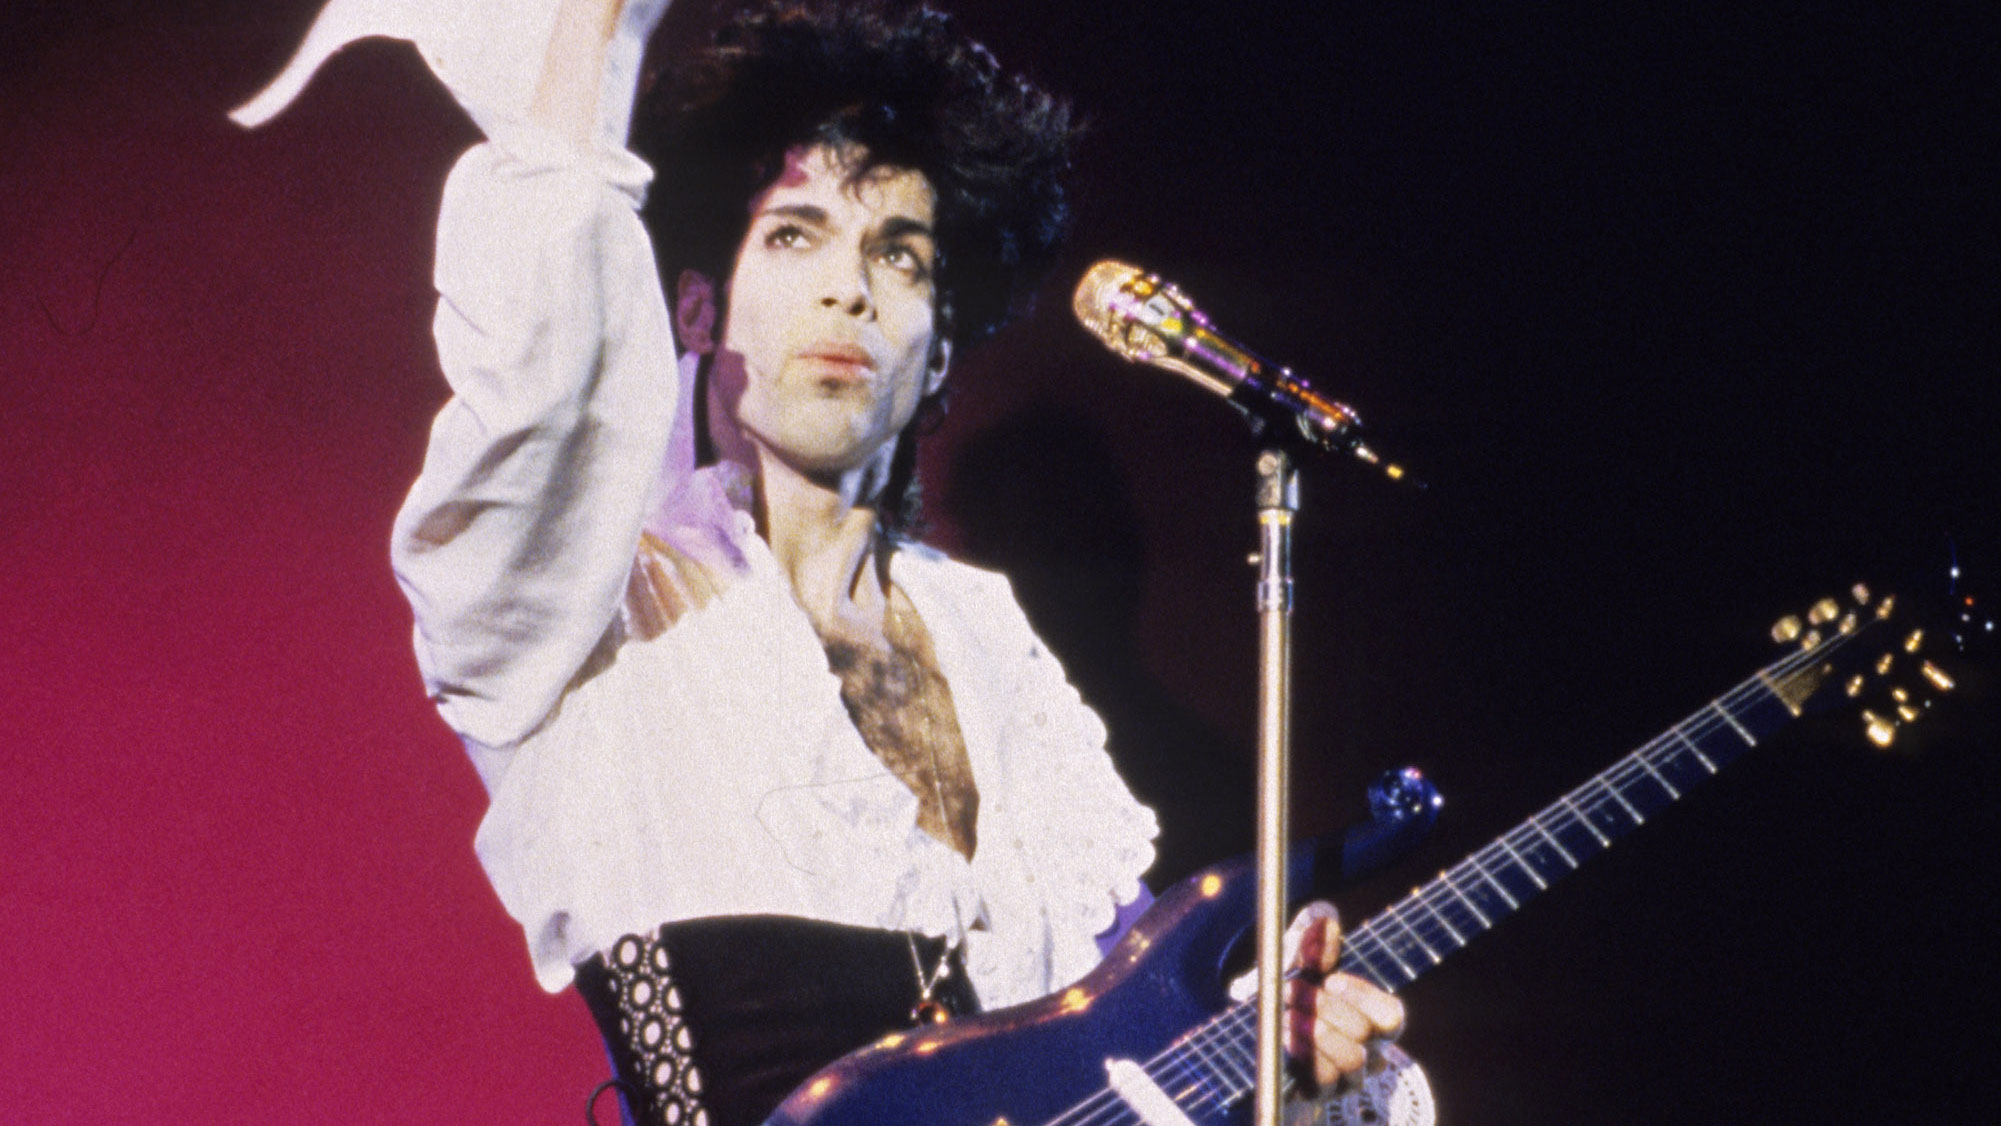 Picture of Prince in concert